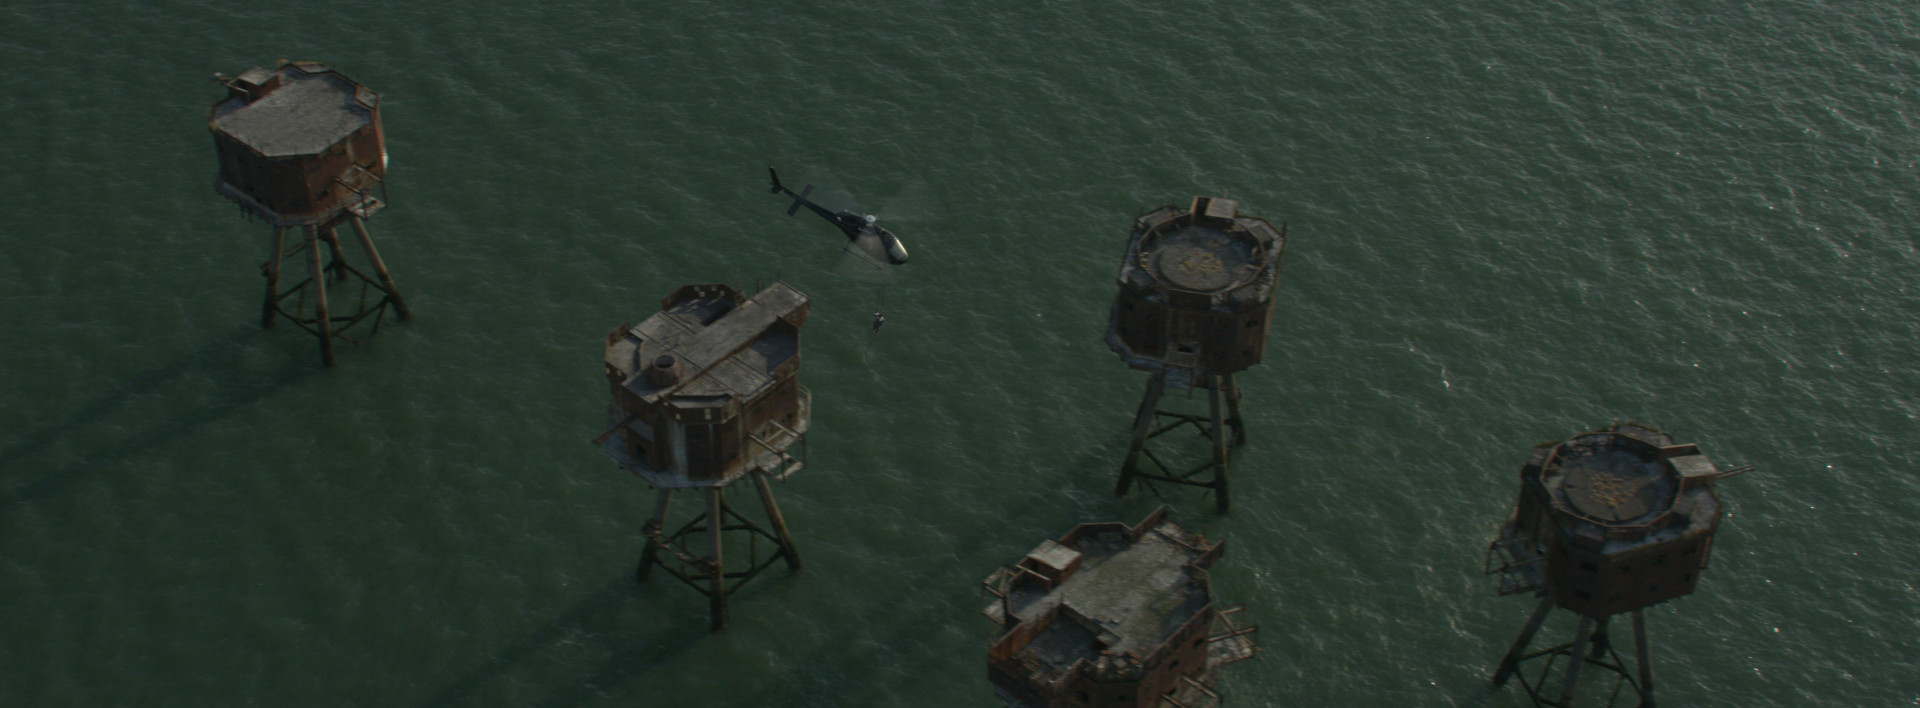 The isolated sea fortress where Mulch is held captive. Image courtesy of RISE.